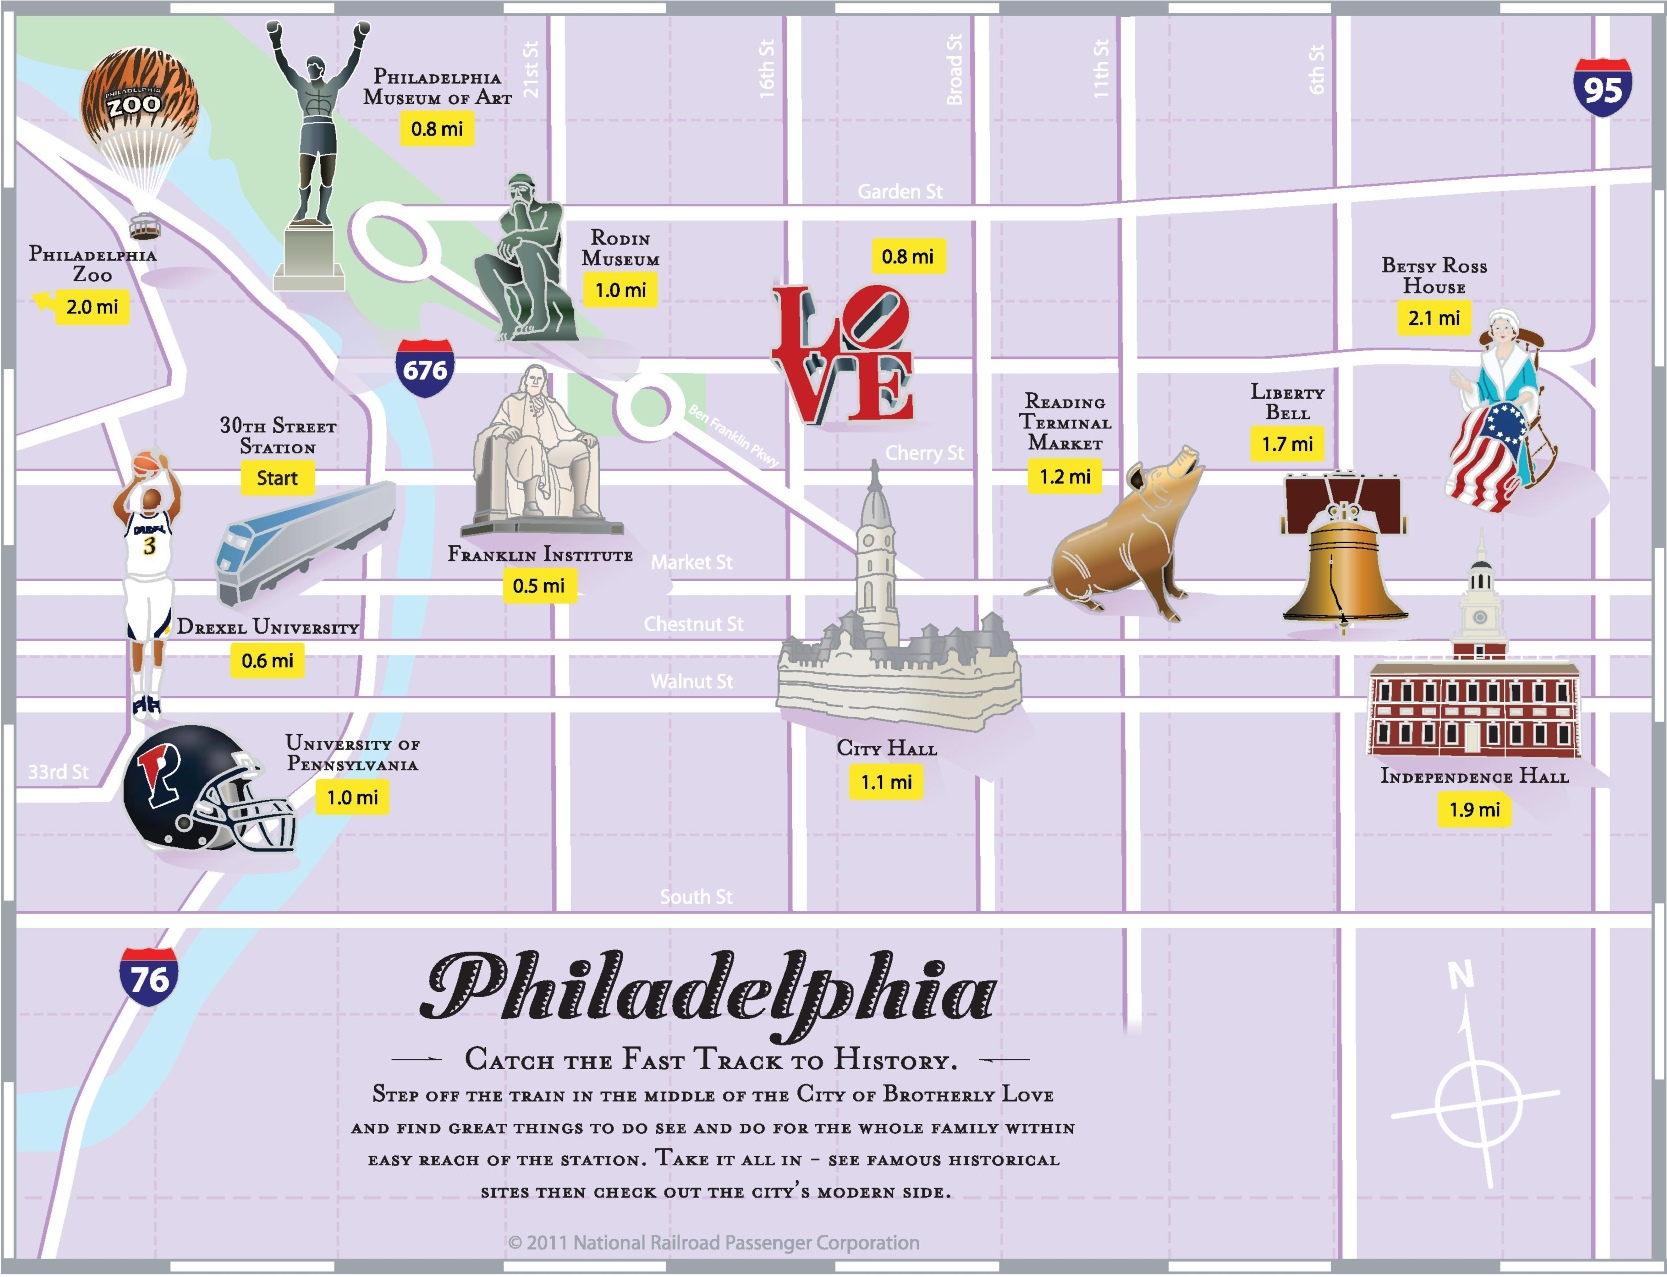 Philadelphia tourist attractions map – Nashville Tourist Attractions Map